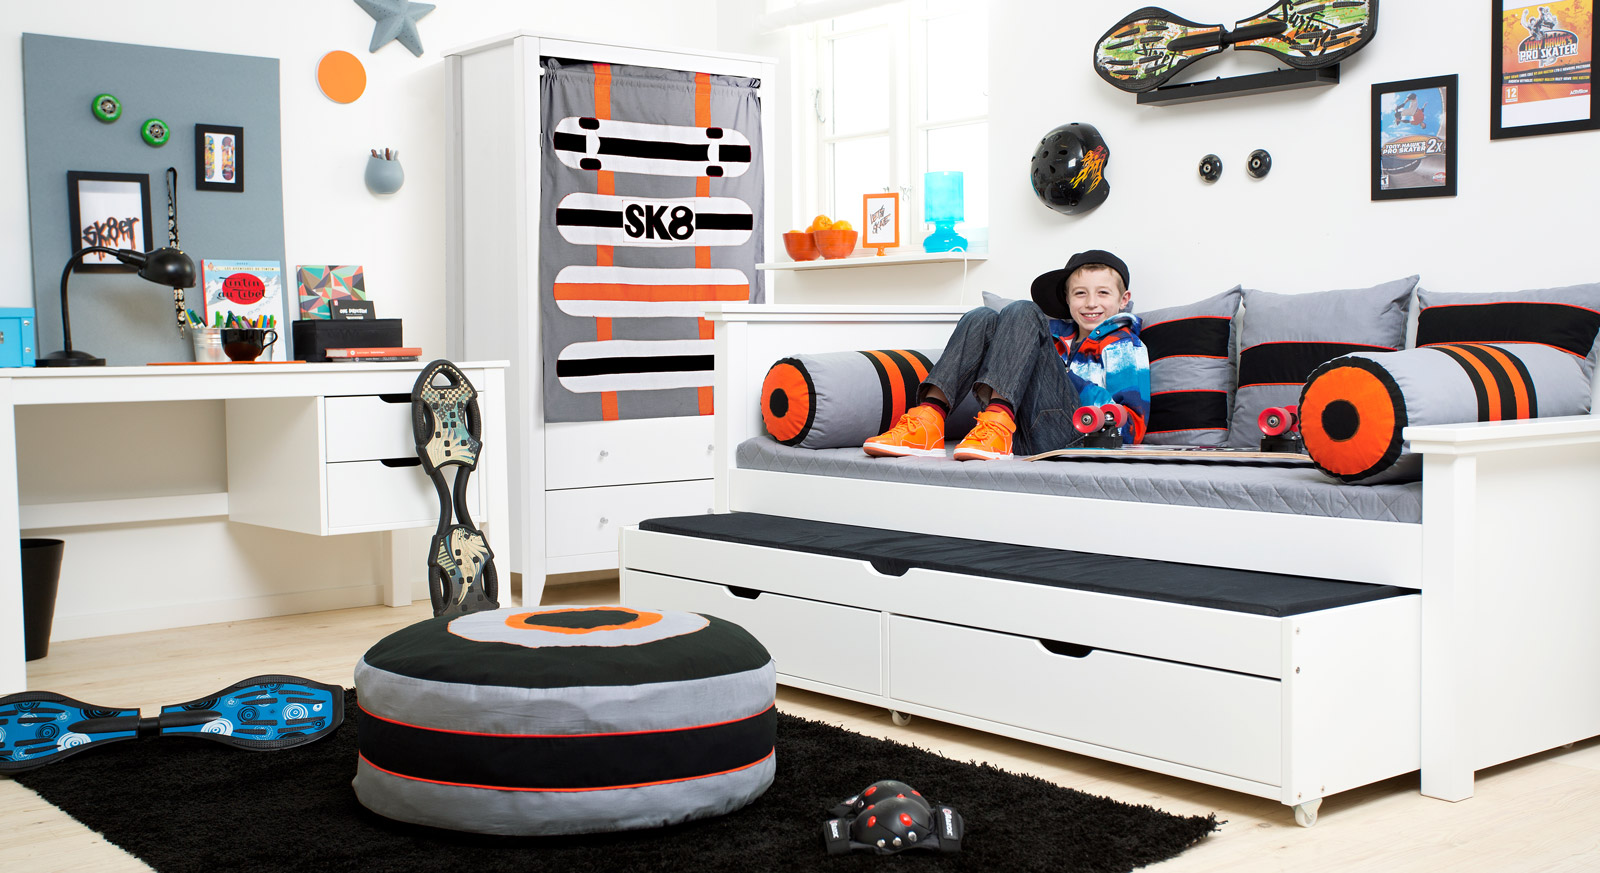 jugendzimmer komplett mit schreibtisch skater. Black Bedroom Furniture Sets. Home Design Ideas